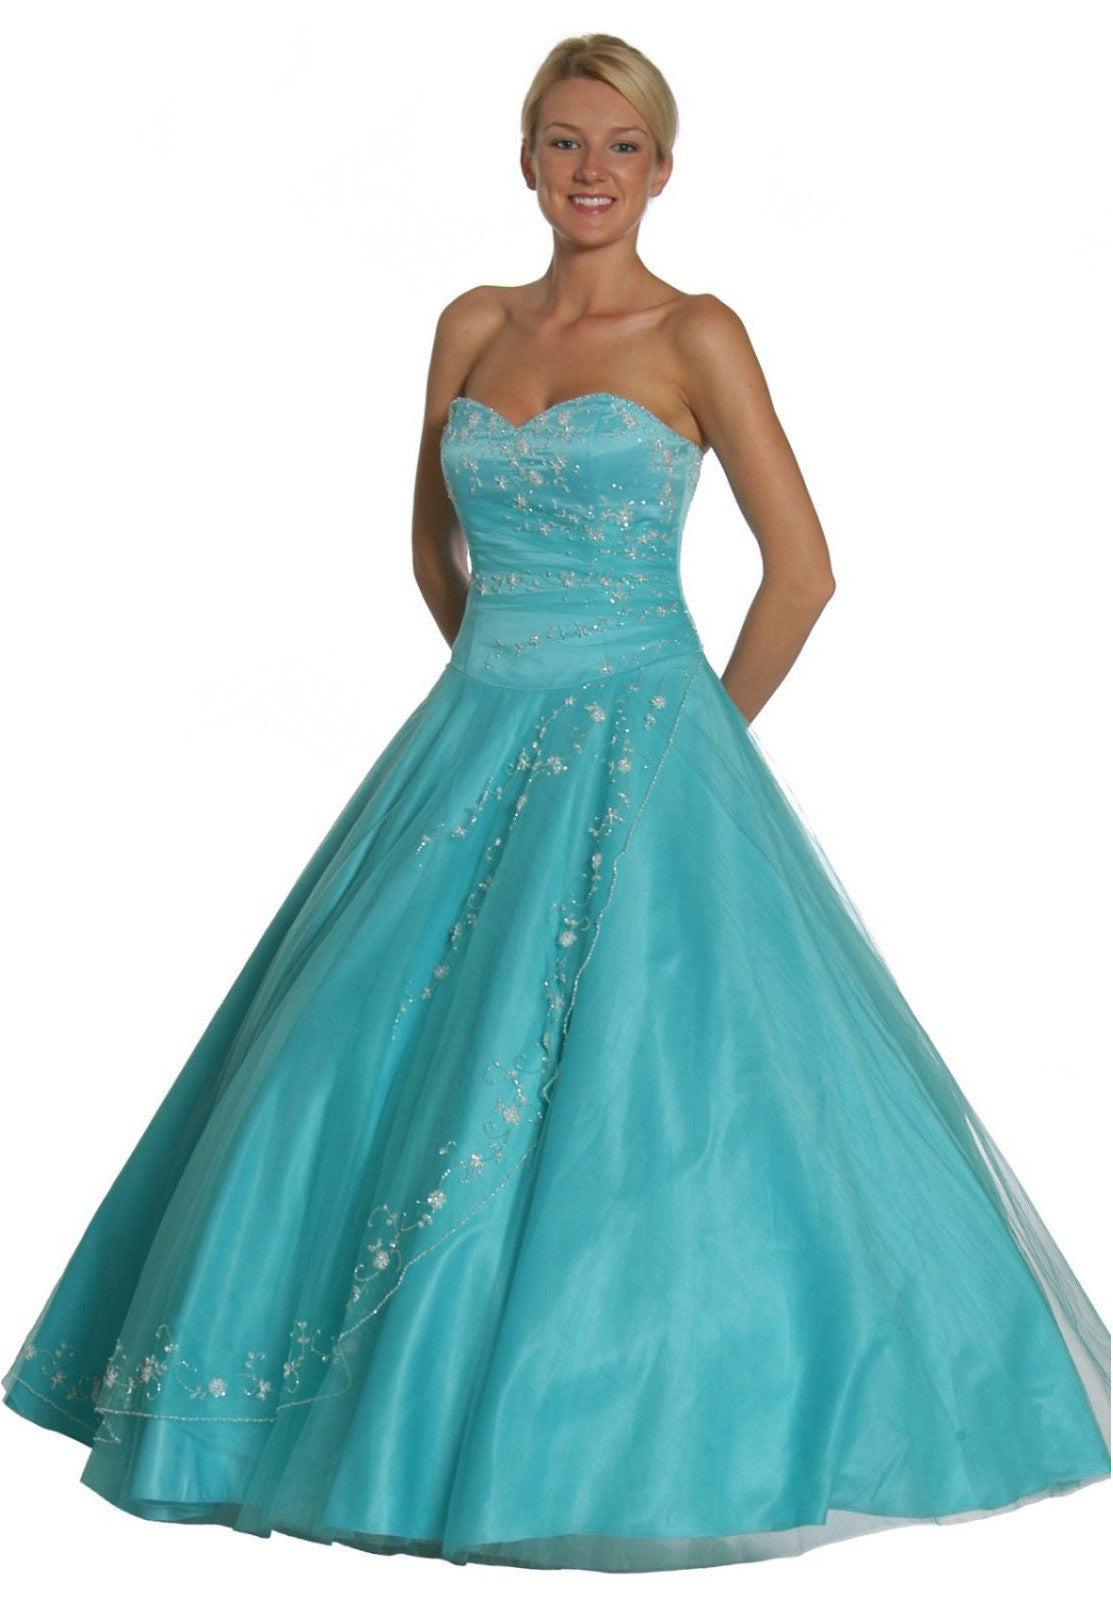 b755b291d7 Aqua Princess Dress Strapless Aqua Ballroom Aqua Quinceanera Dresses ...